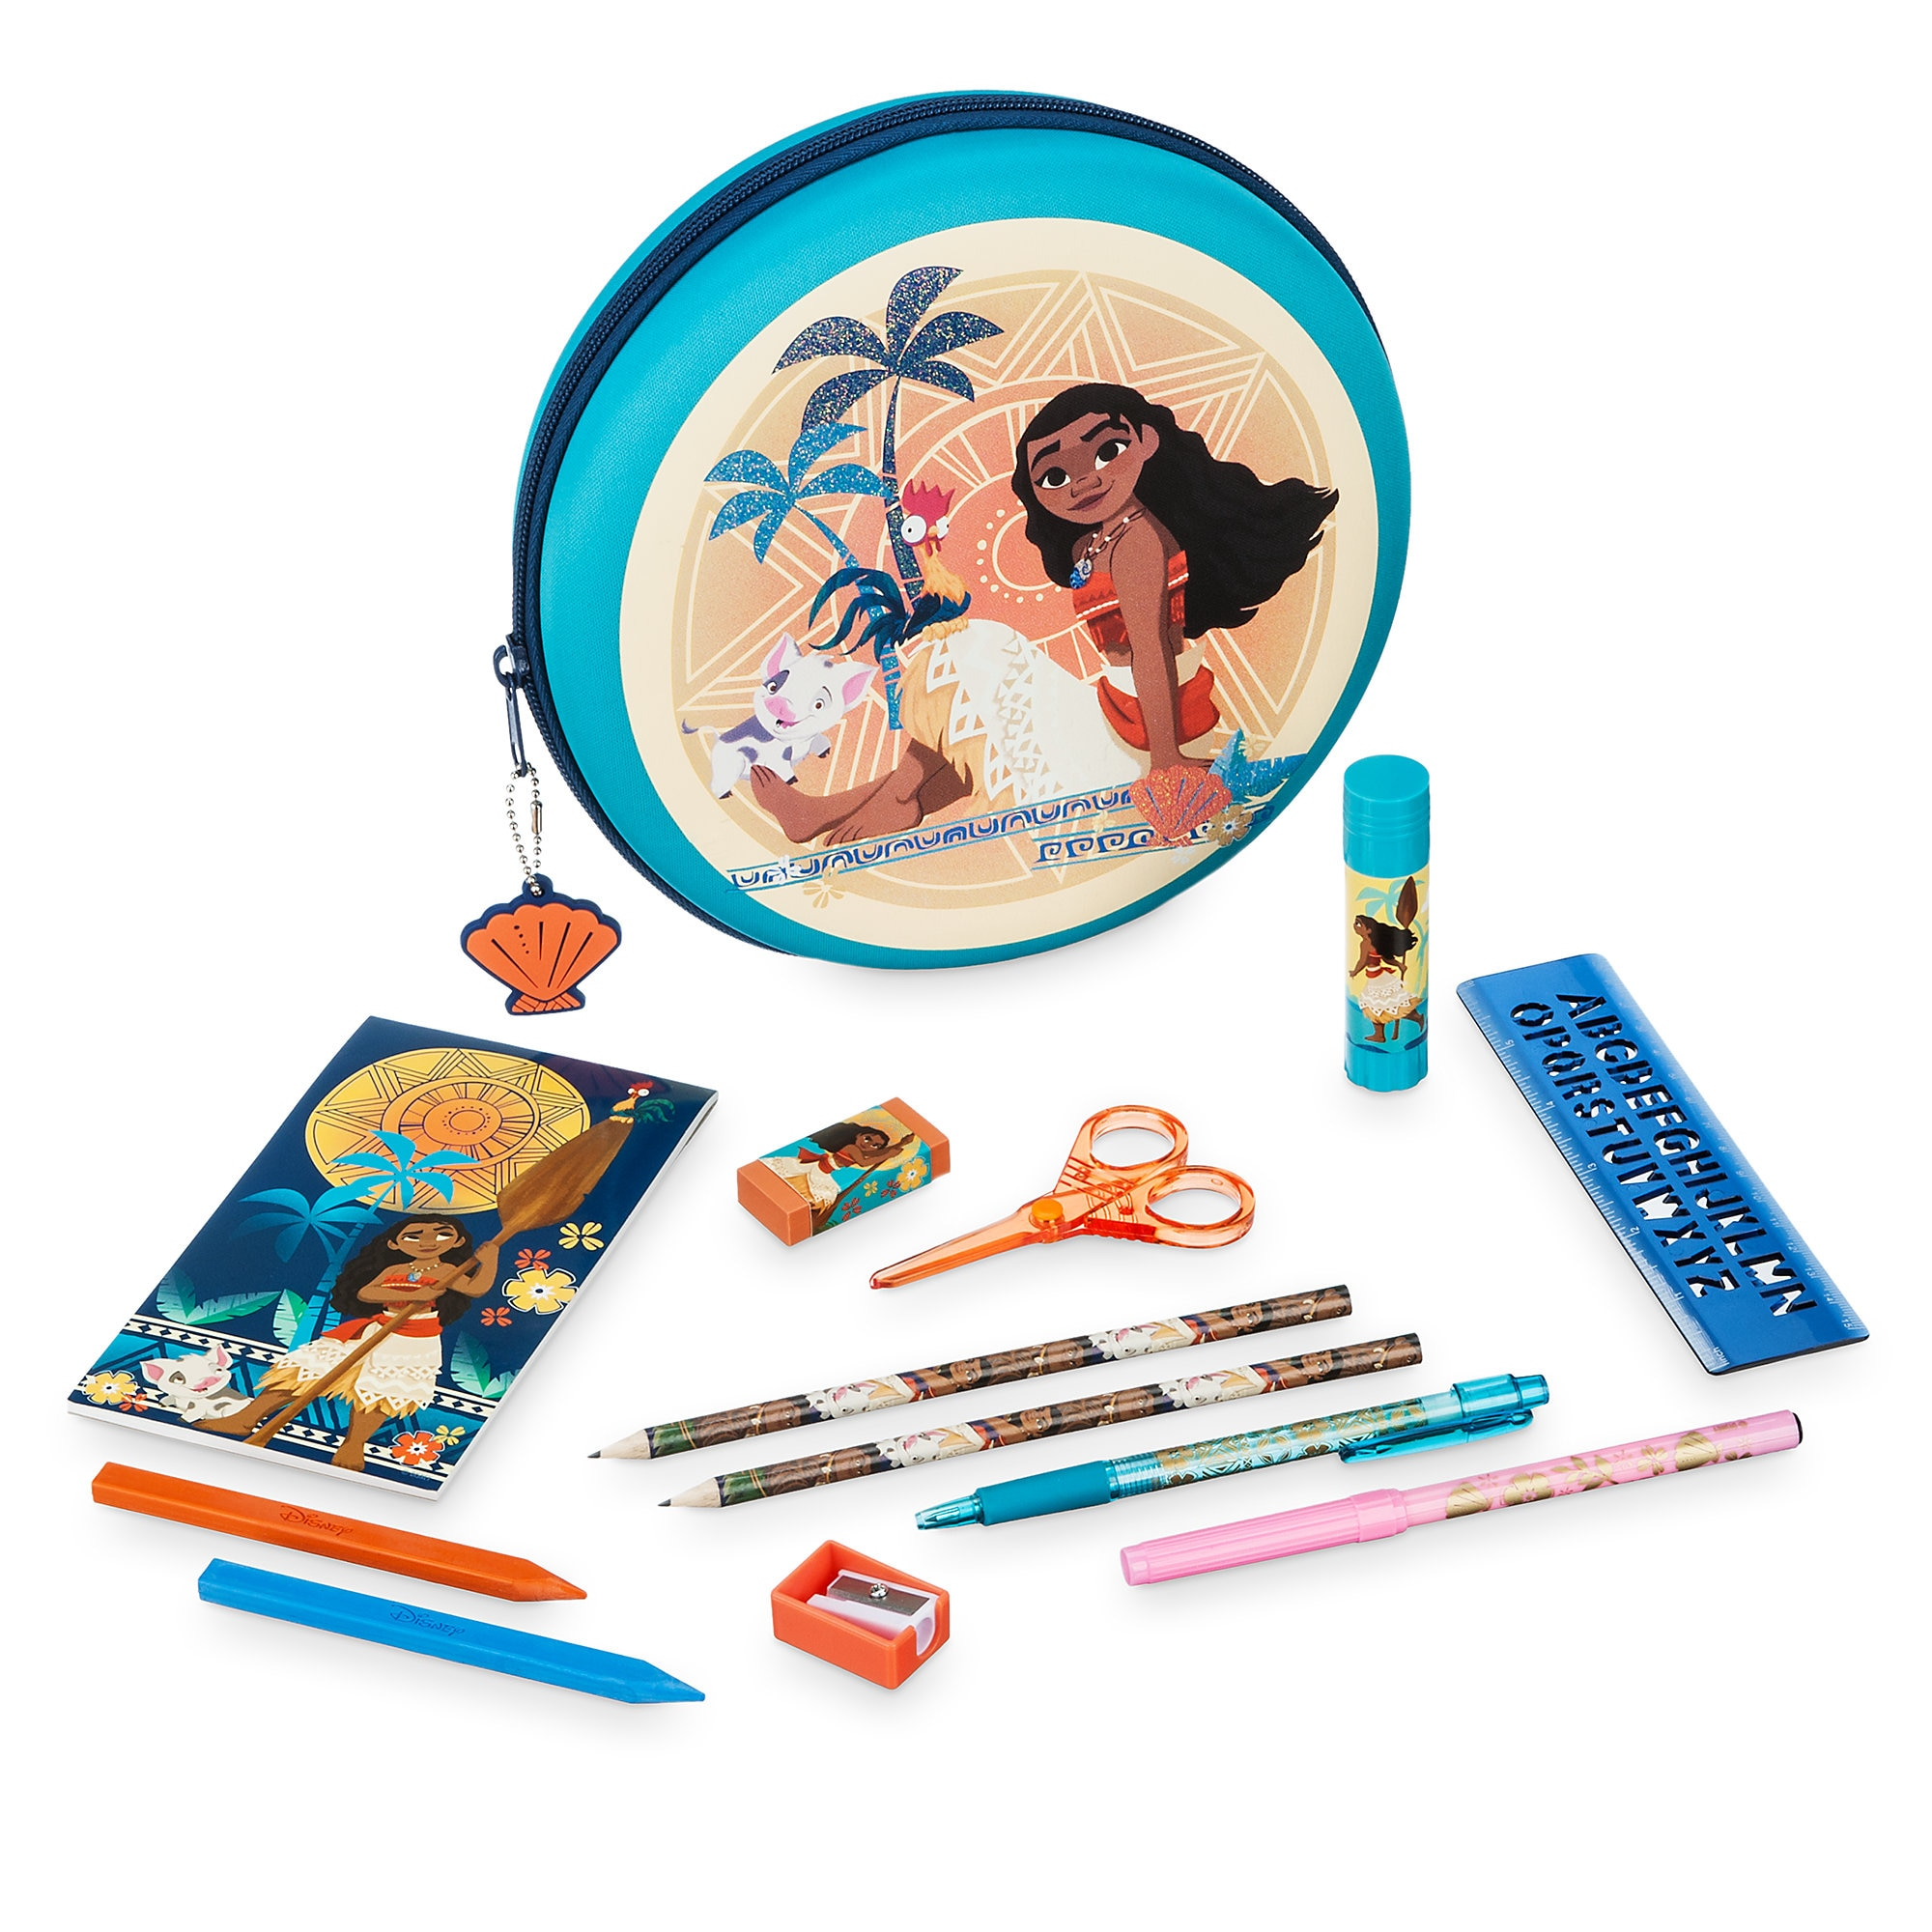 Moana Zip-Up Stationery Kit